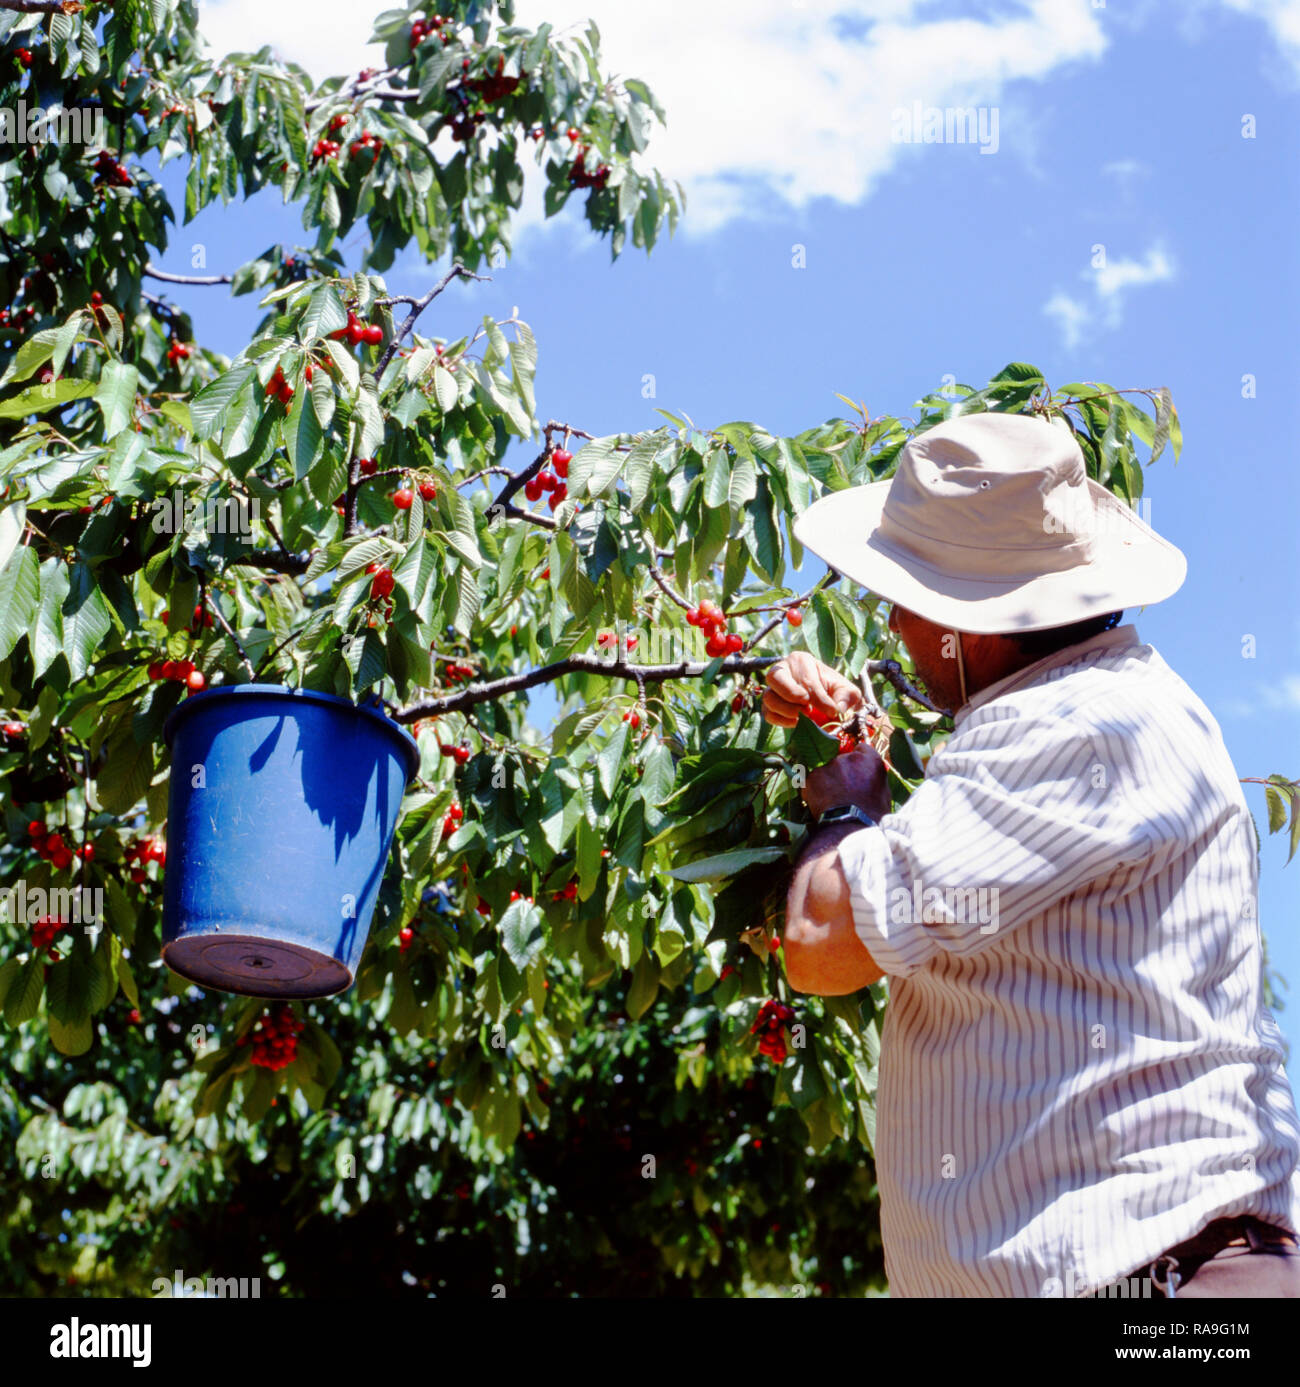 Apt, France-August 11,2017 Cherry farmer havesting the red ripe cherries in his orchard - Stock Image